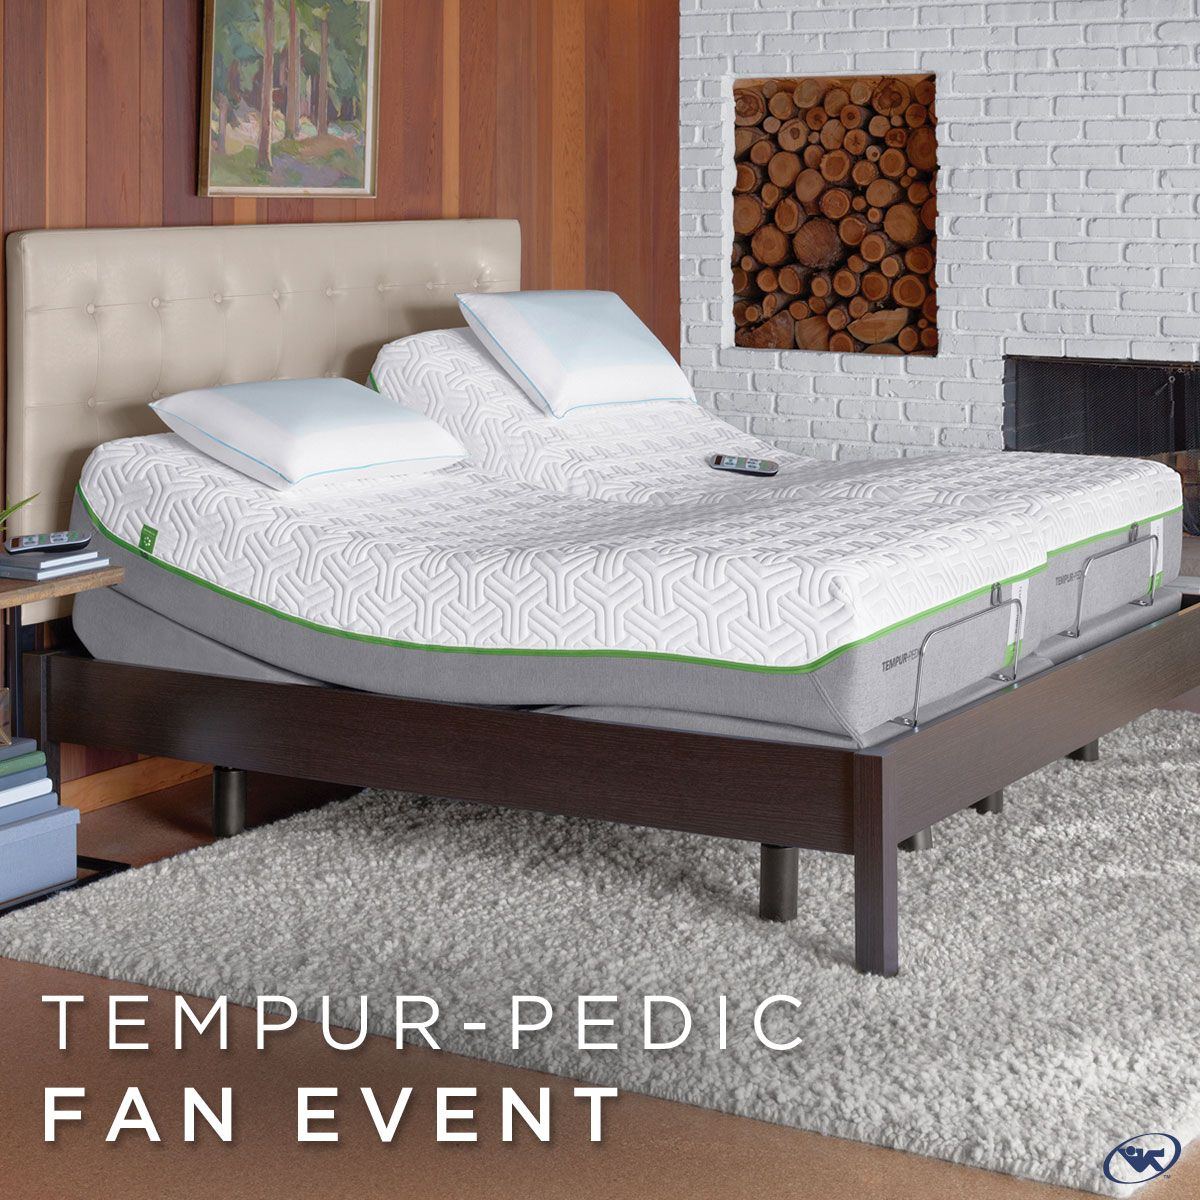 Save BIG during our TempurPedic Fan Event going on